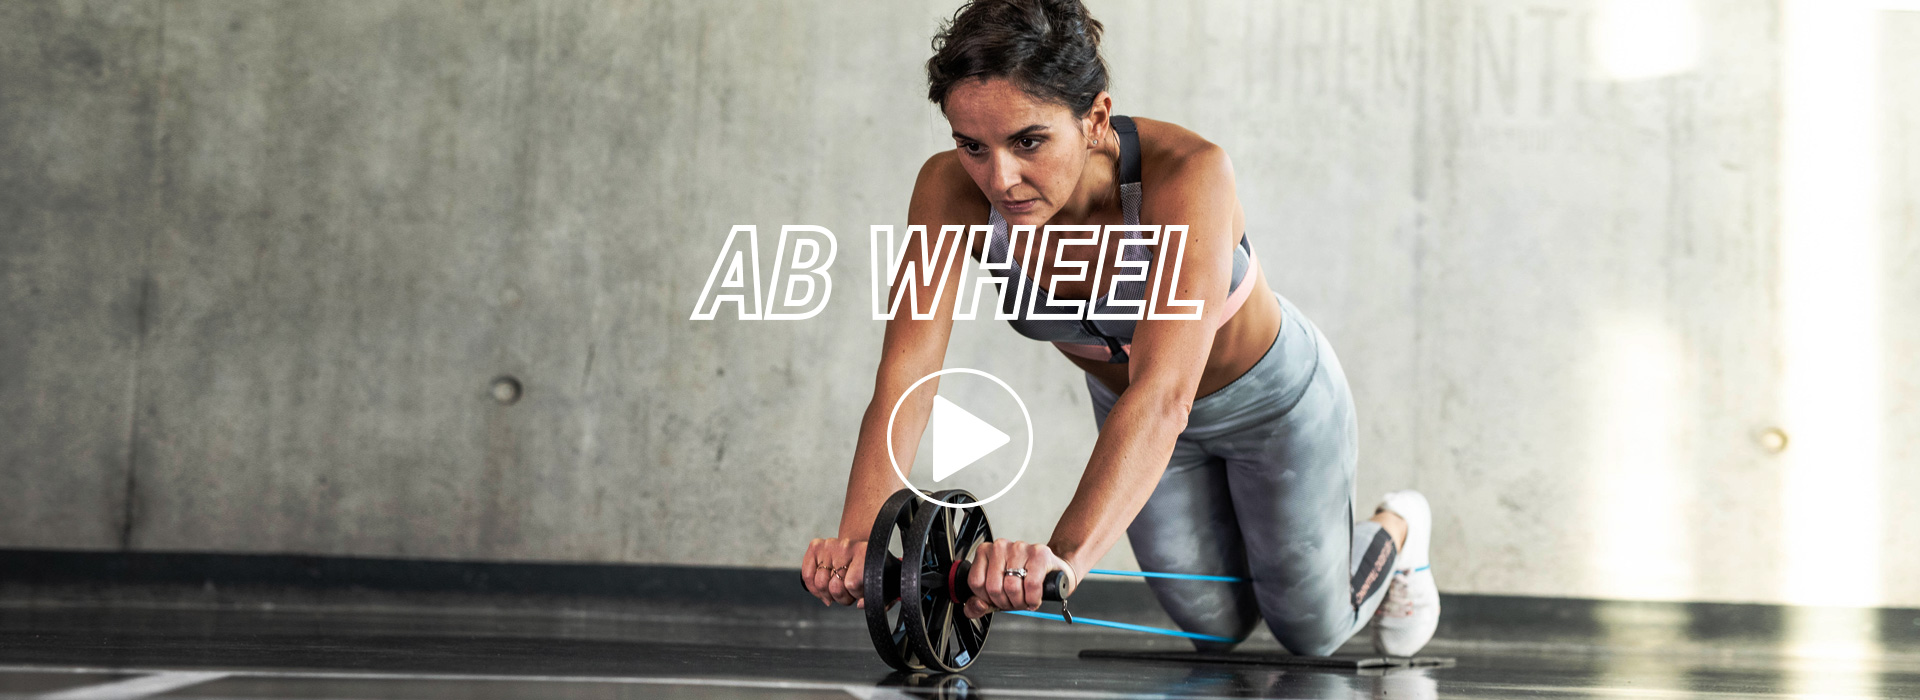 EXERCICES-MUSCULATION-ROUE_ABDOMINAUX-VIDEO